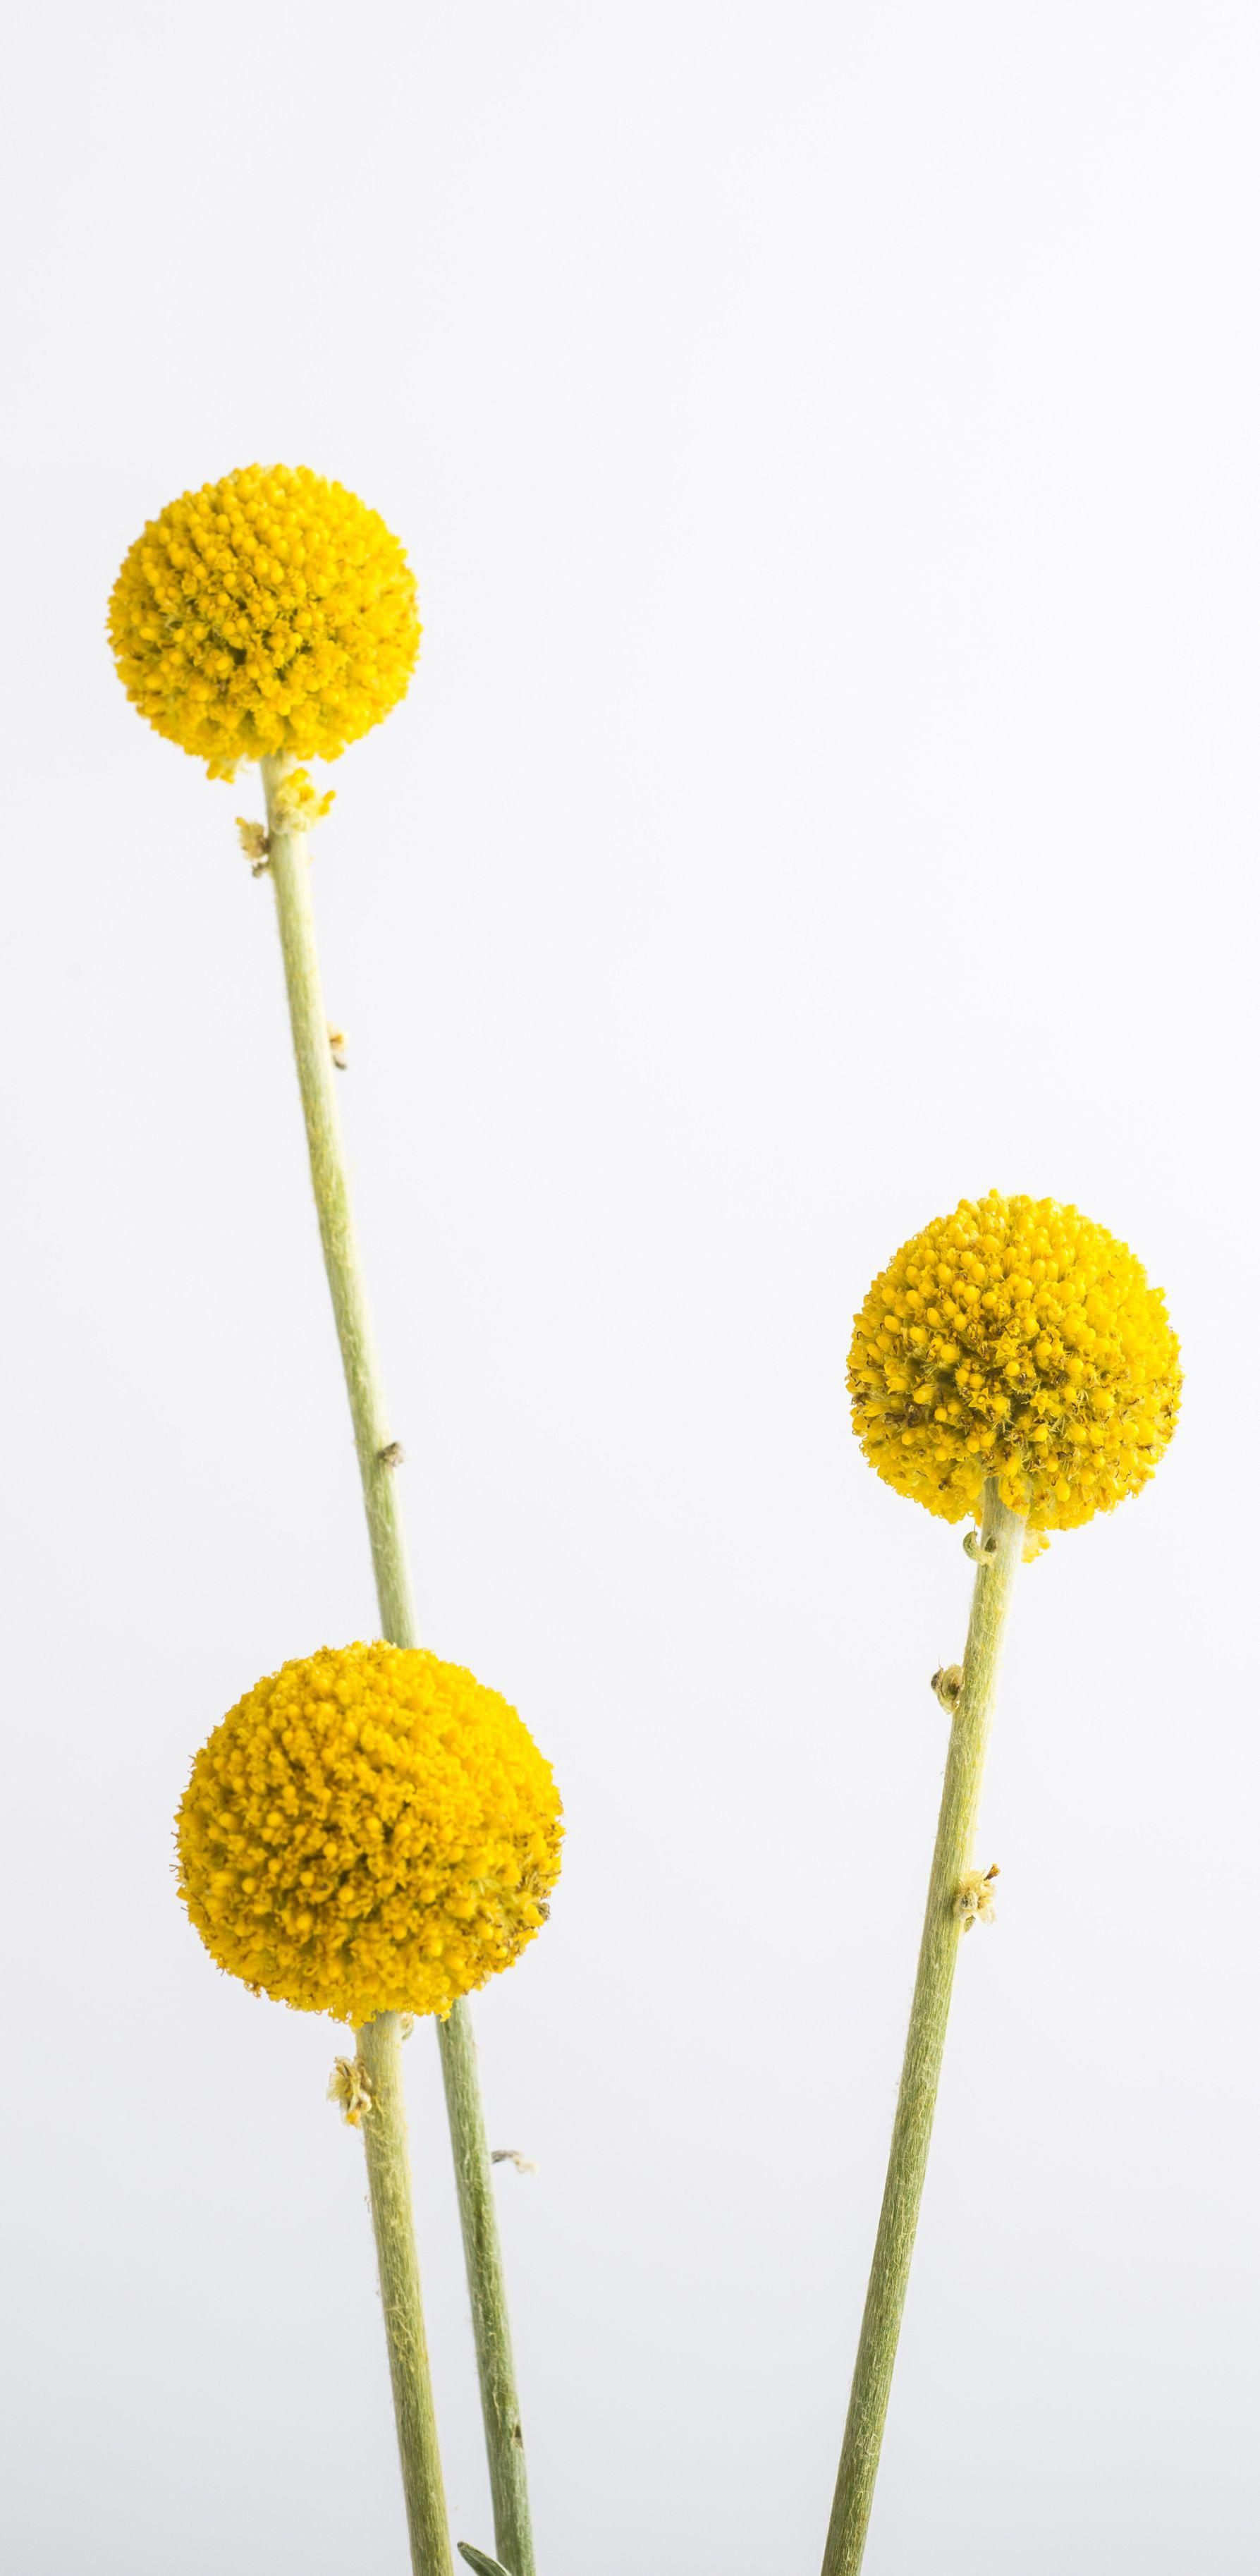 Yellow Flowers Commonly Evoke Feelings Of Happiness And Cheer Which